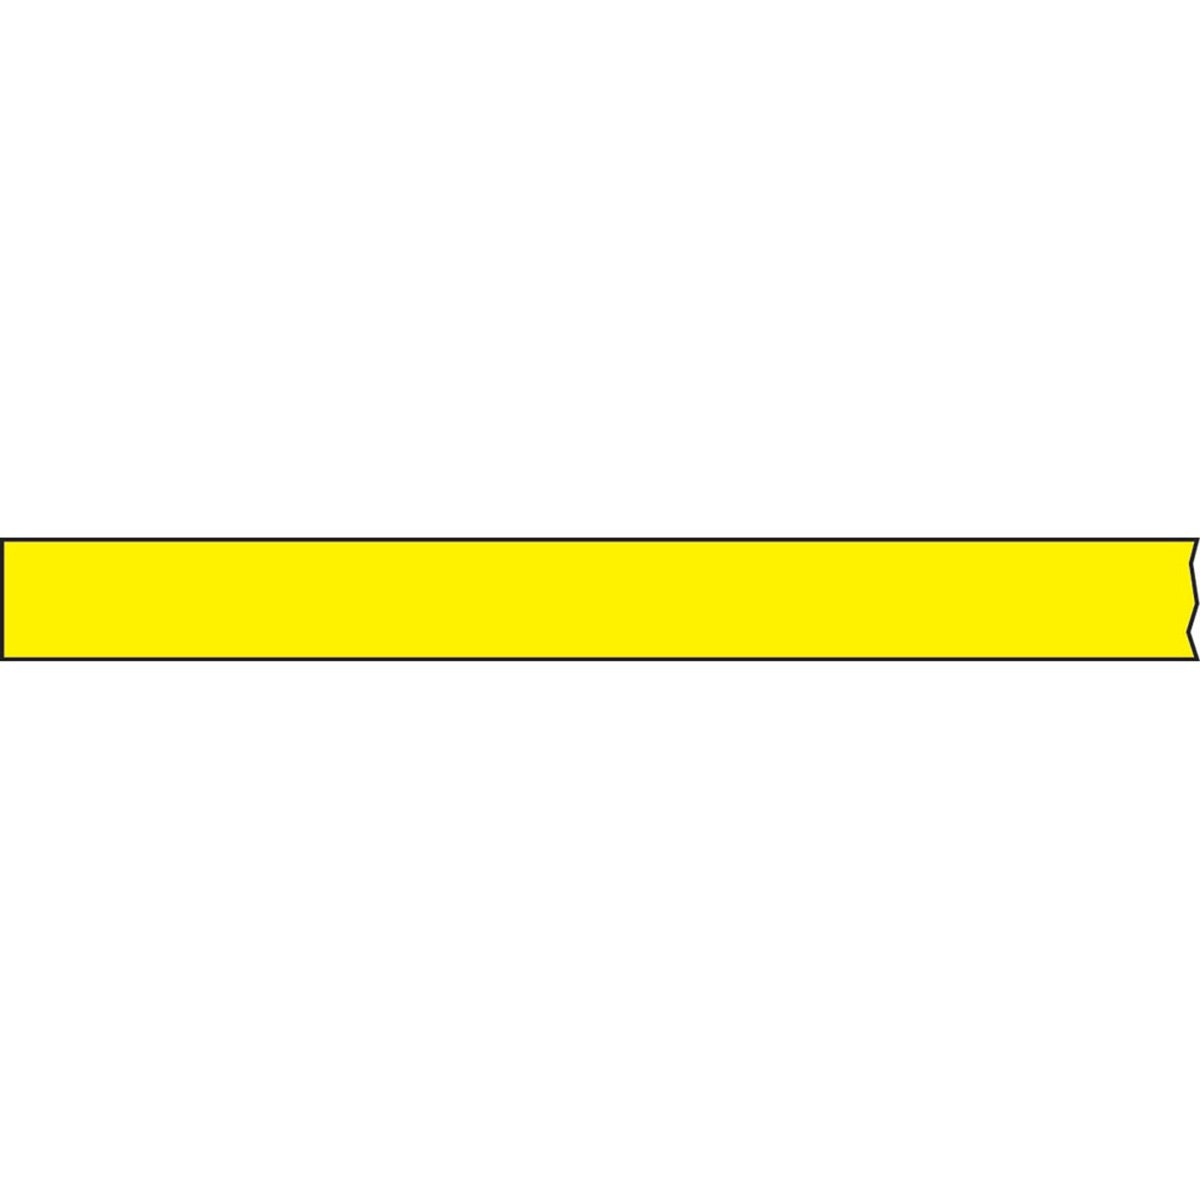 TIMETAPE T-1260-2 Tape, Removable, 3'' Core, 1/2'' x 2160'', Imprints Yellow (Pack of 1)